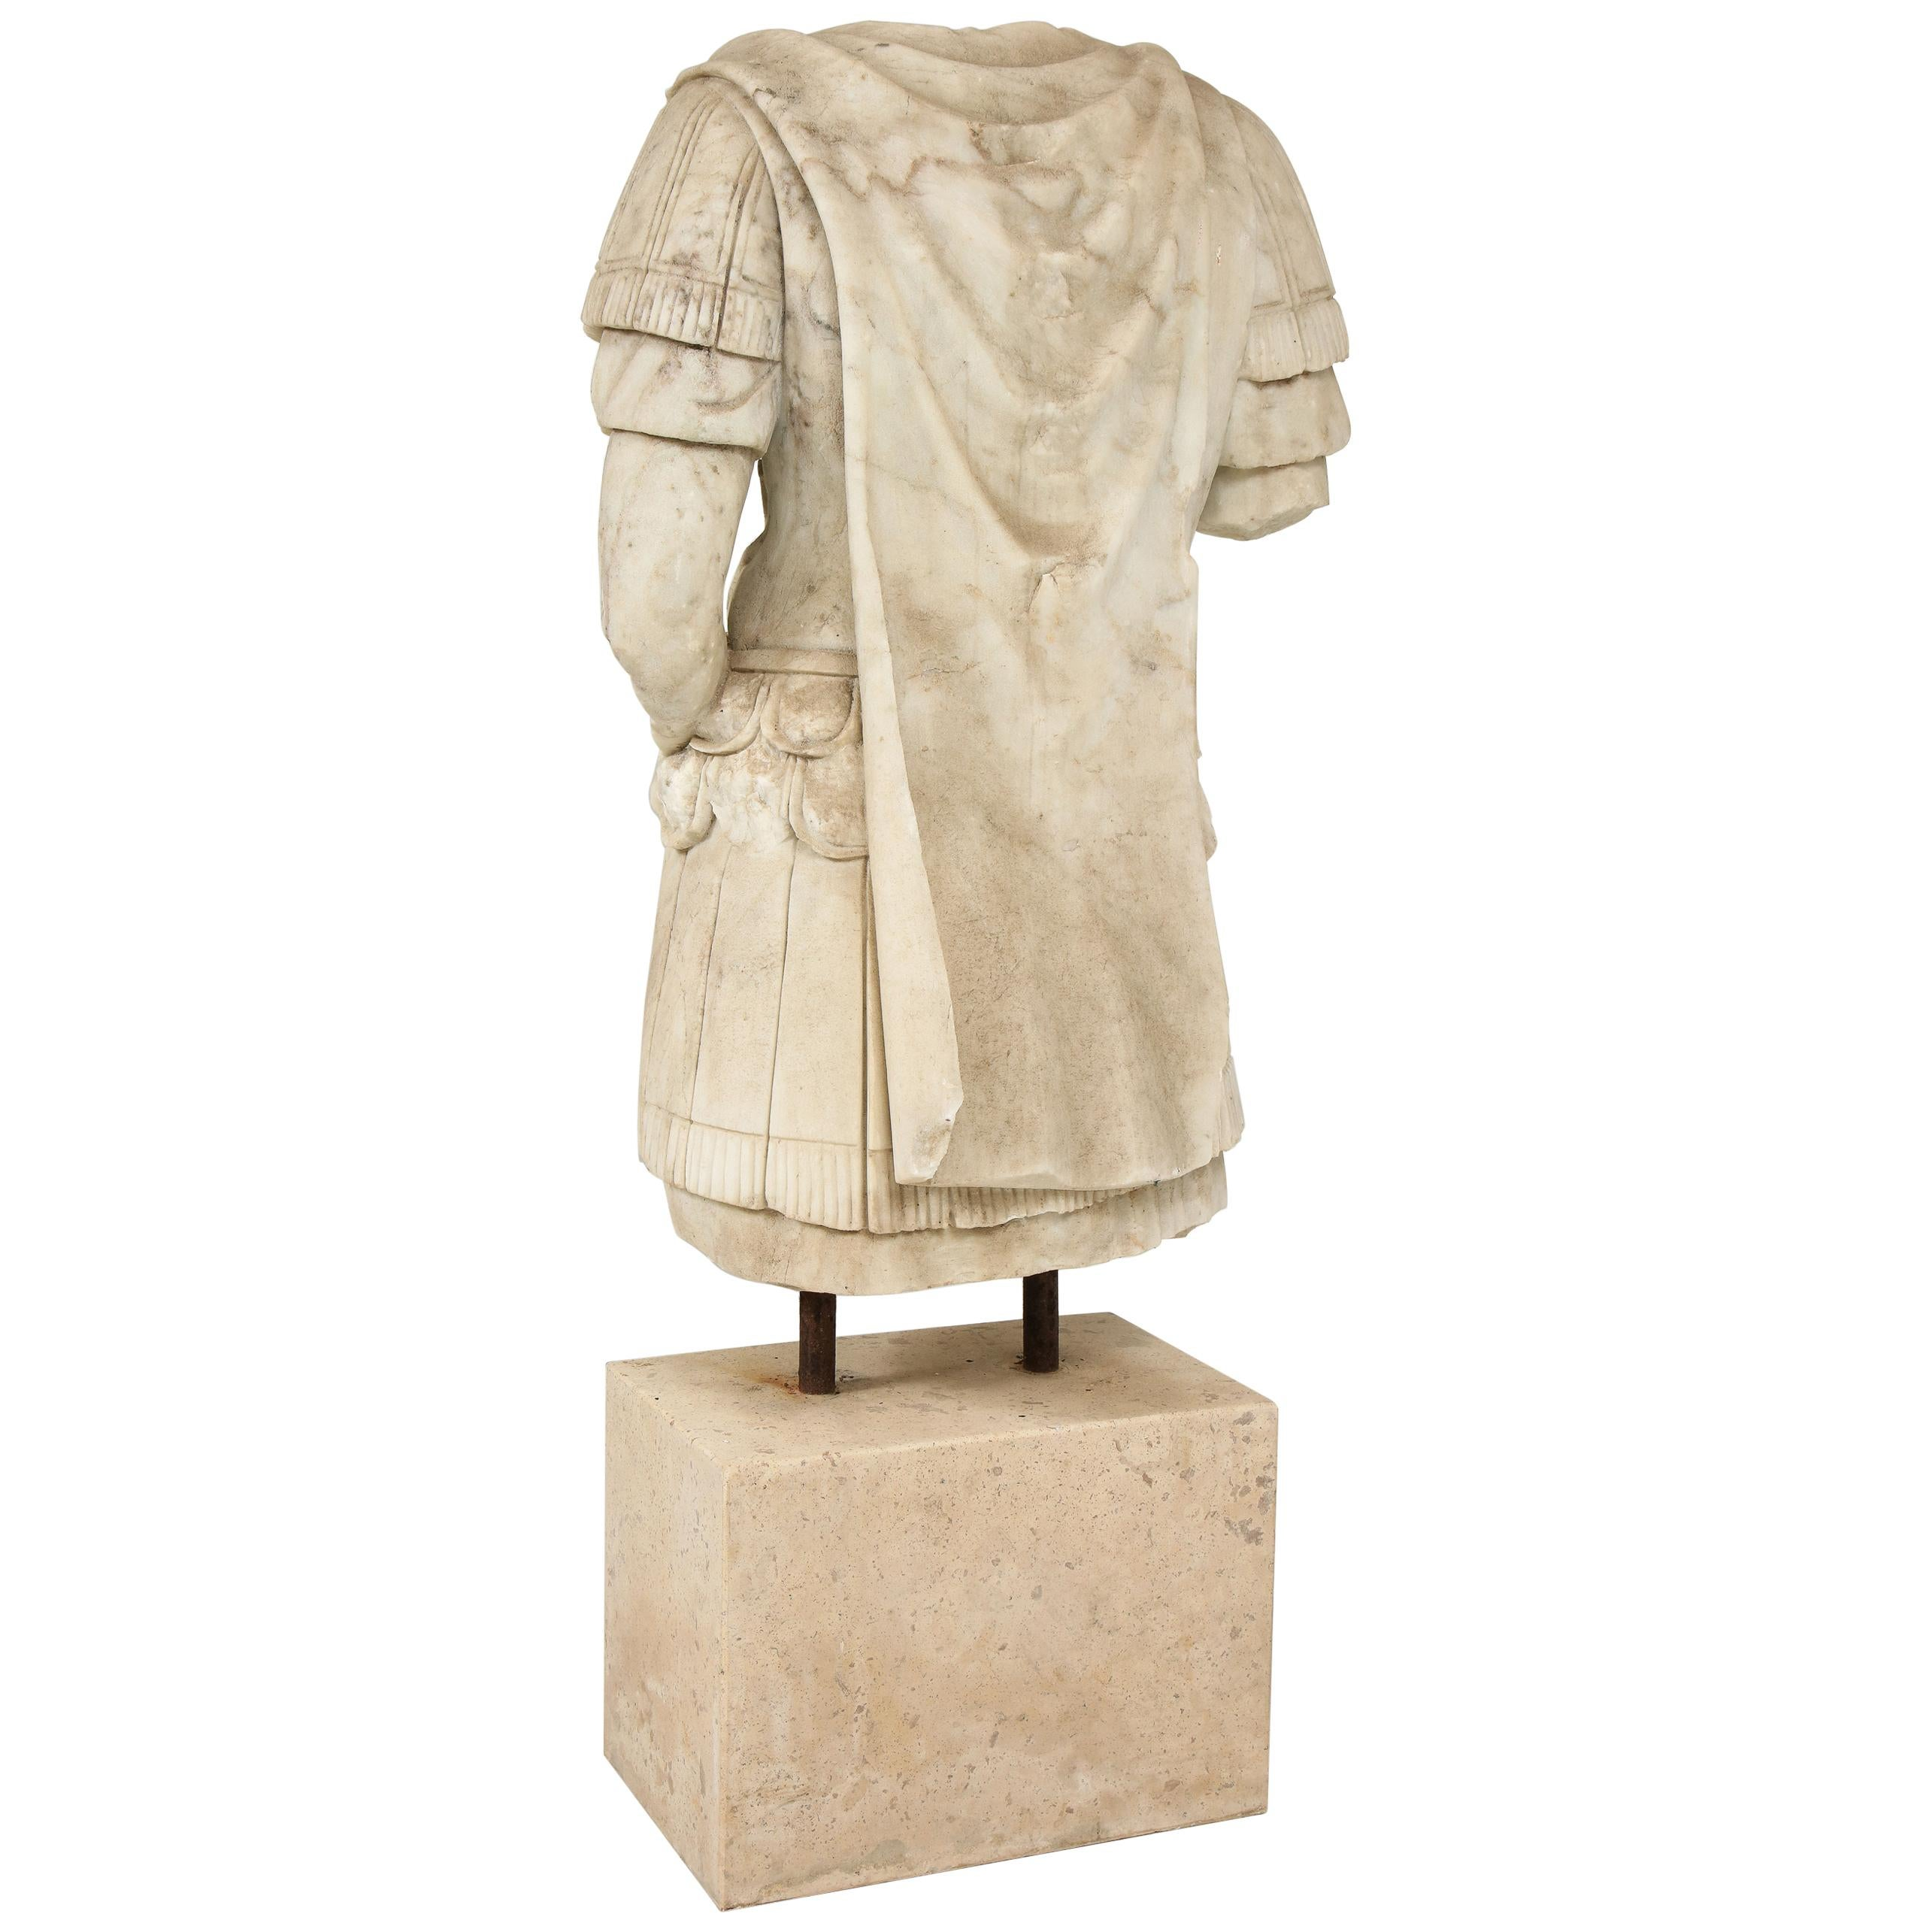 20th Century Hand Carved Marble Sculpture of Roman Soldier